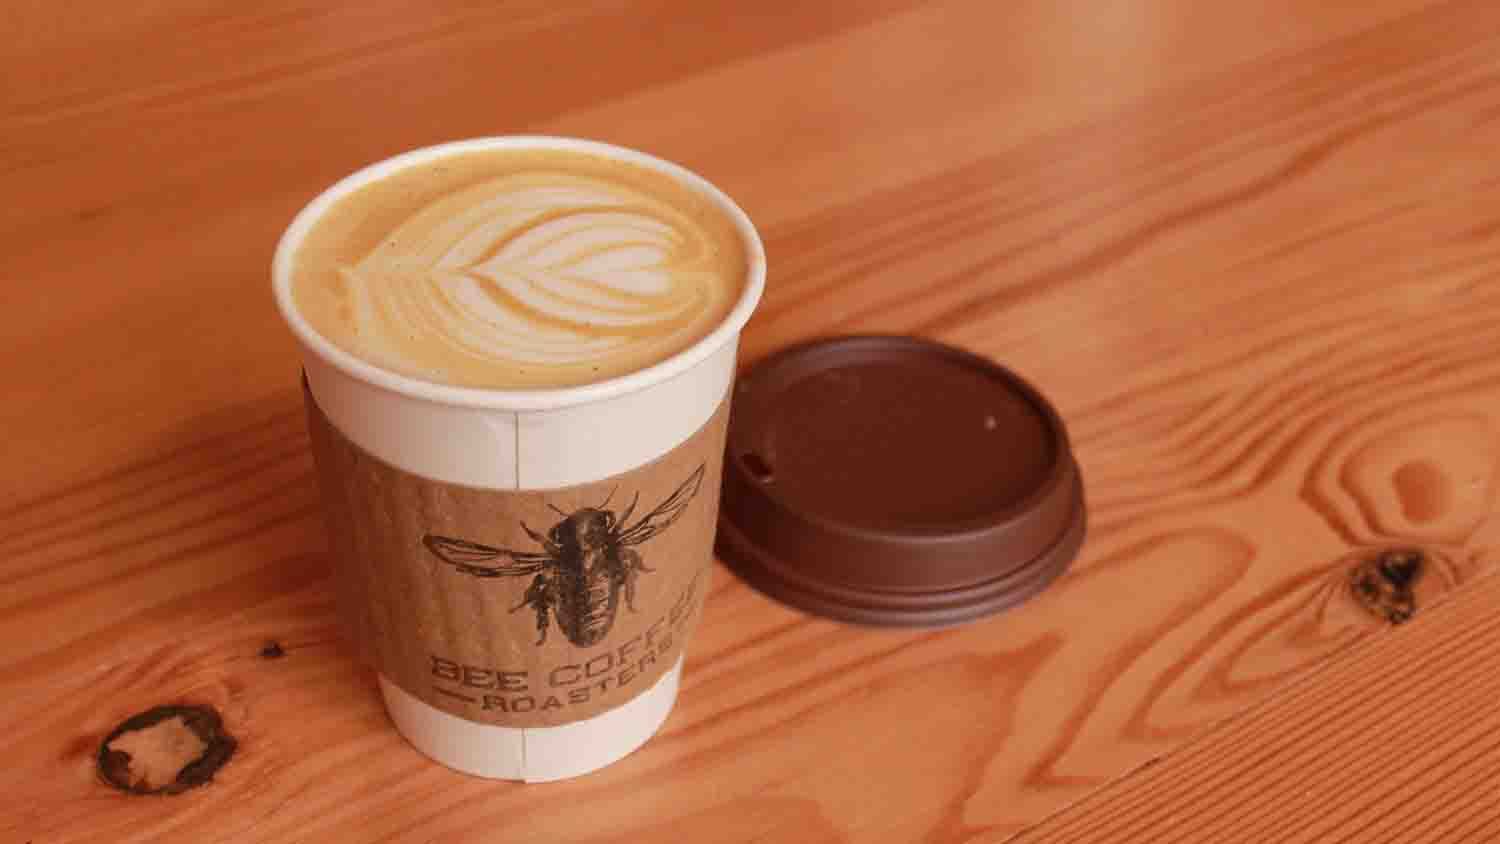 Bee coffee roasters 1